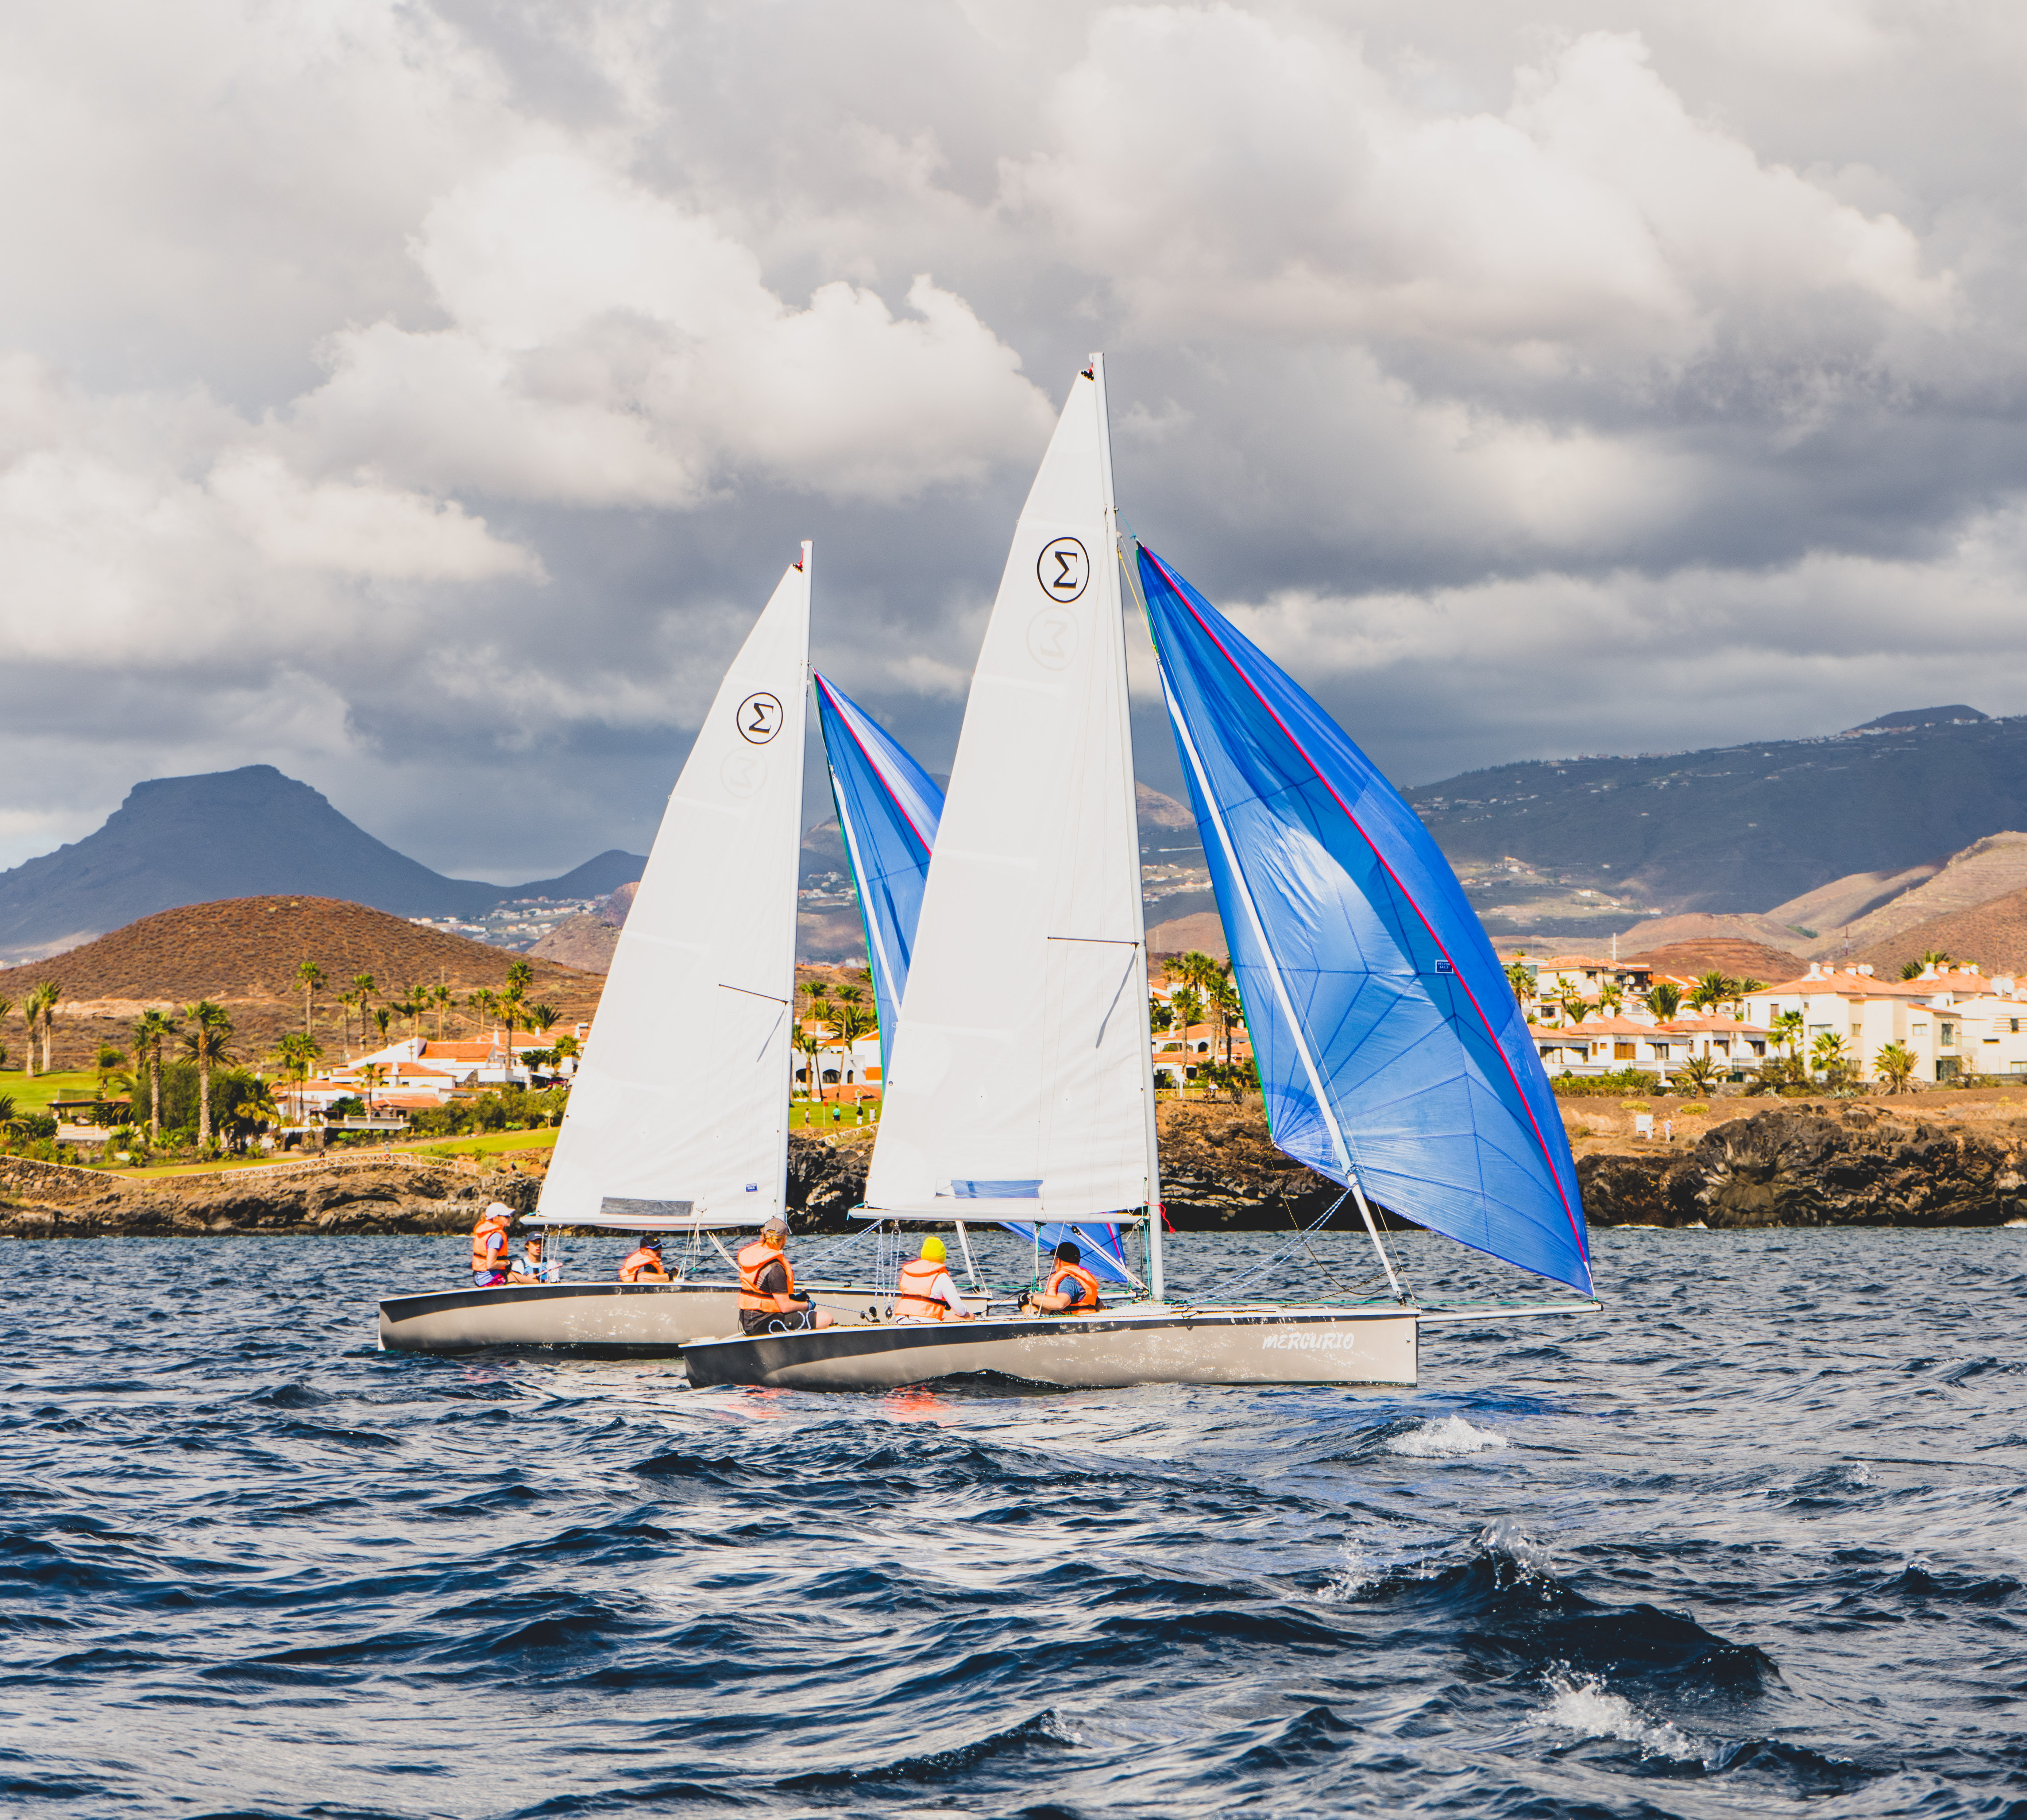 two sigma dinghies sailing with gennakers in Tenerife